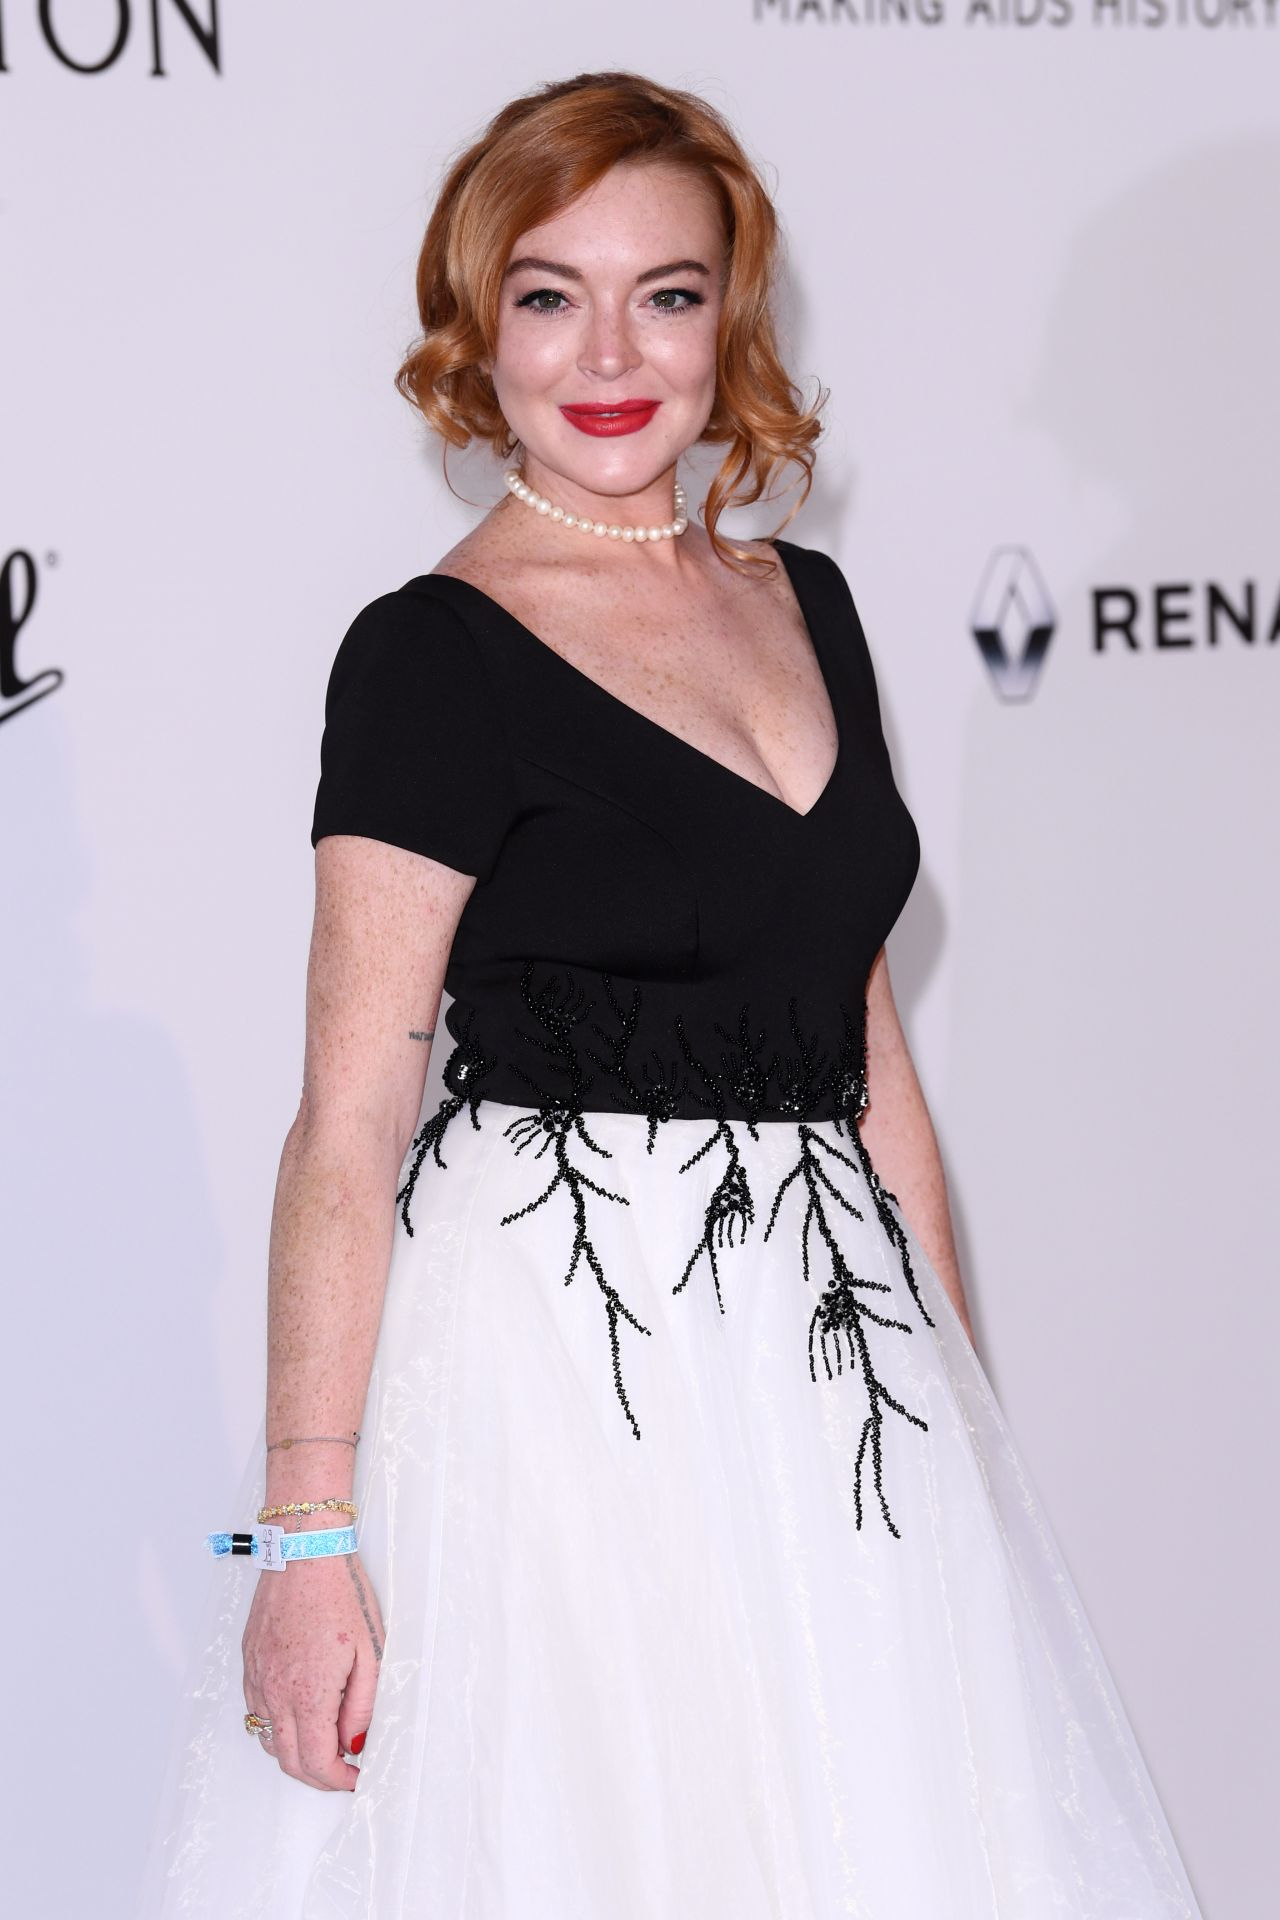 Lindsay Lohan at AmfAR's 24th Cinema Against AIDS Gala ... Lindsay Lohan